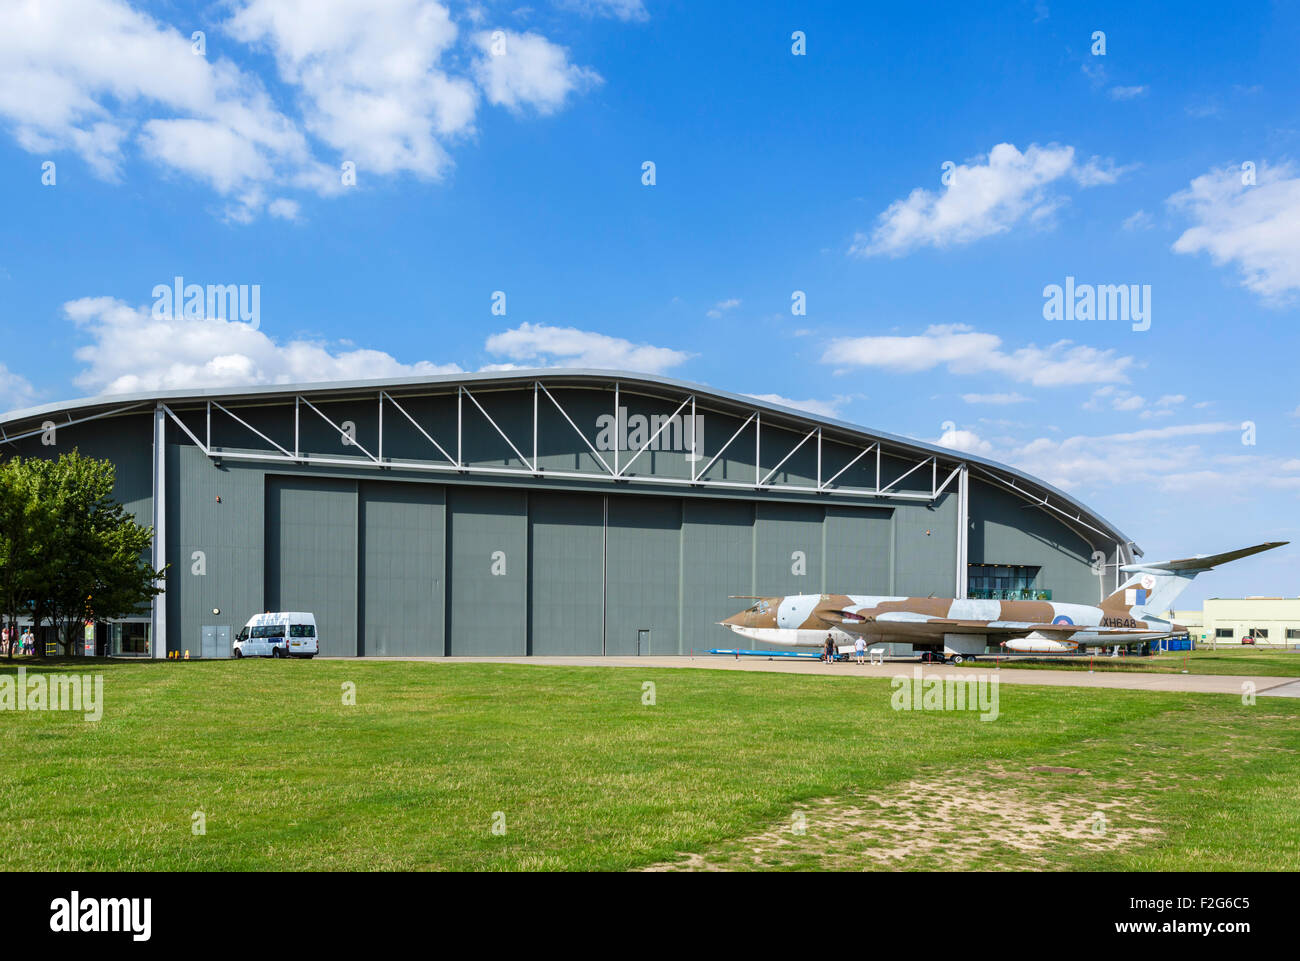 The AirSpace hangar at the Imperial War Museum, Duxford, Cambridgeshire, England, UK Stock Photo